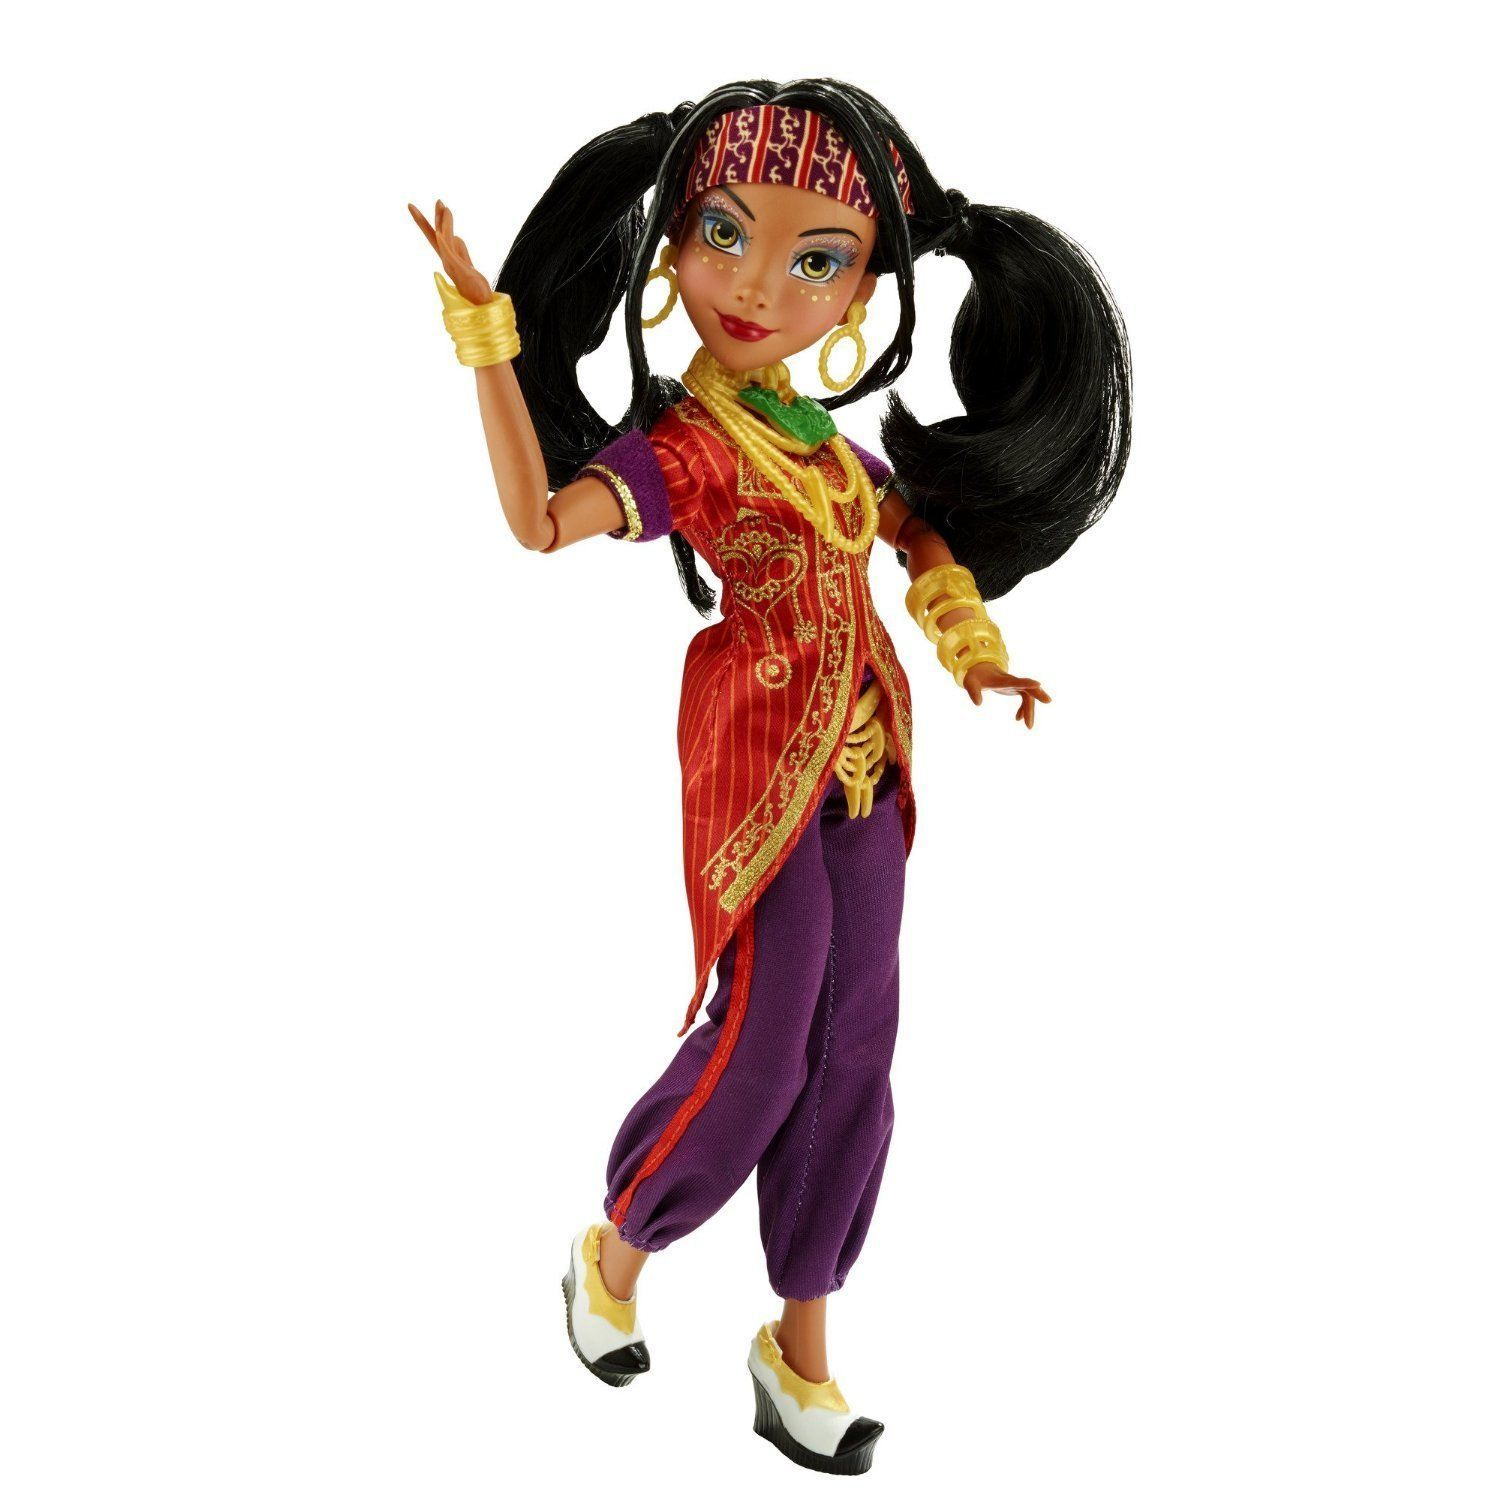 Disney Descendants Villain Genie Chic Freddie IE Doll Isle of the Lost